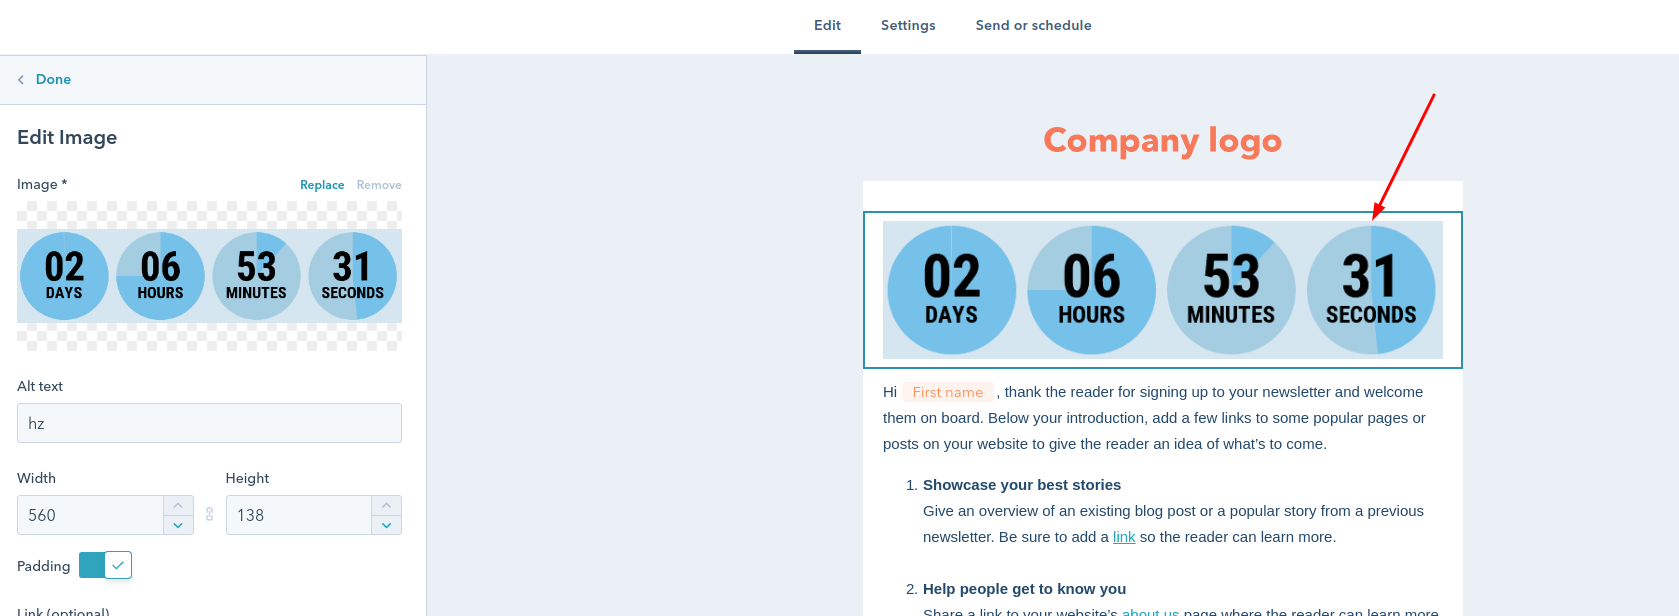 Countdown timer for email in HubSpot